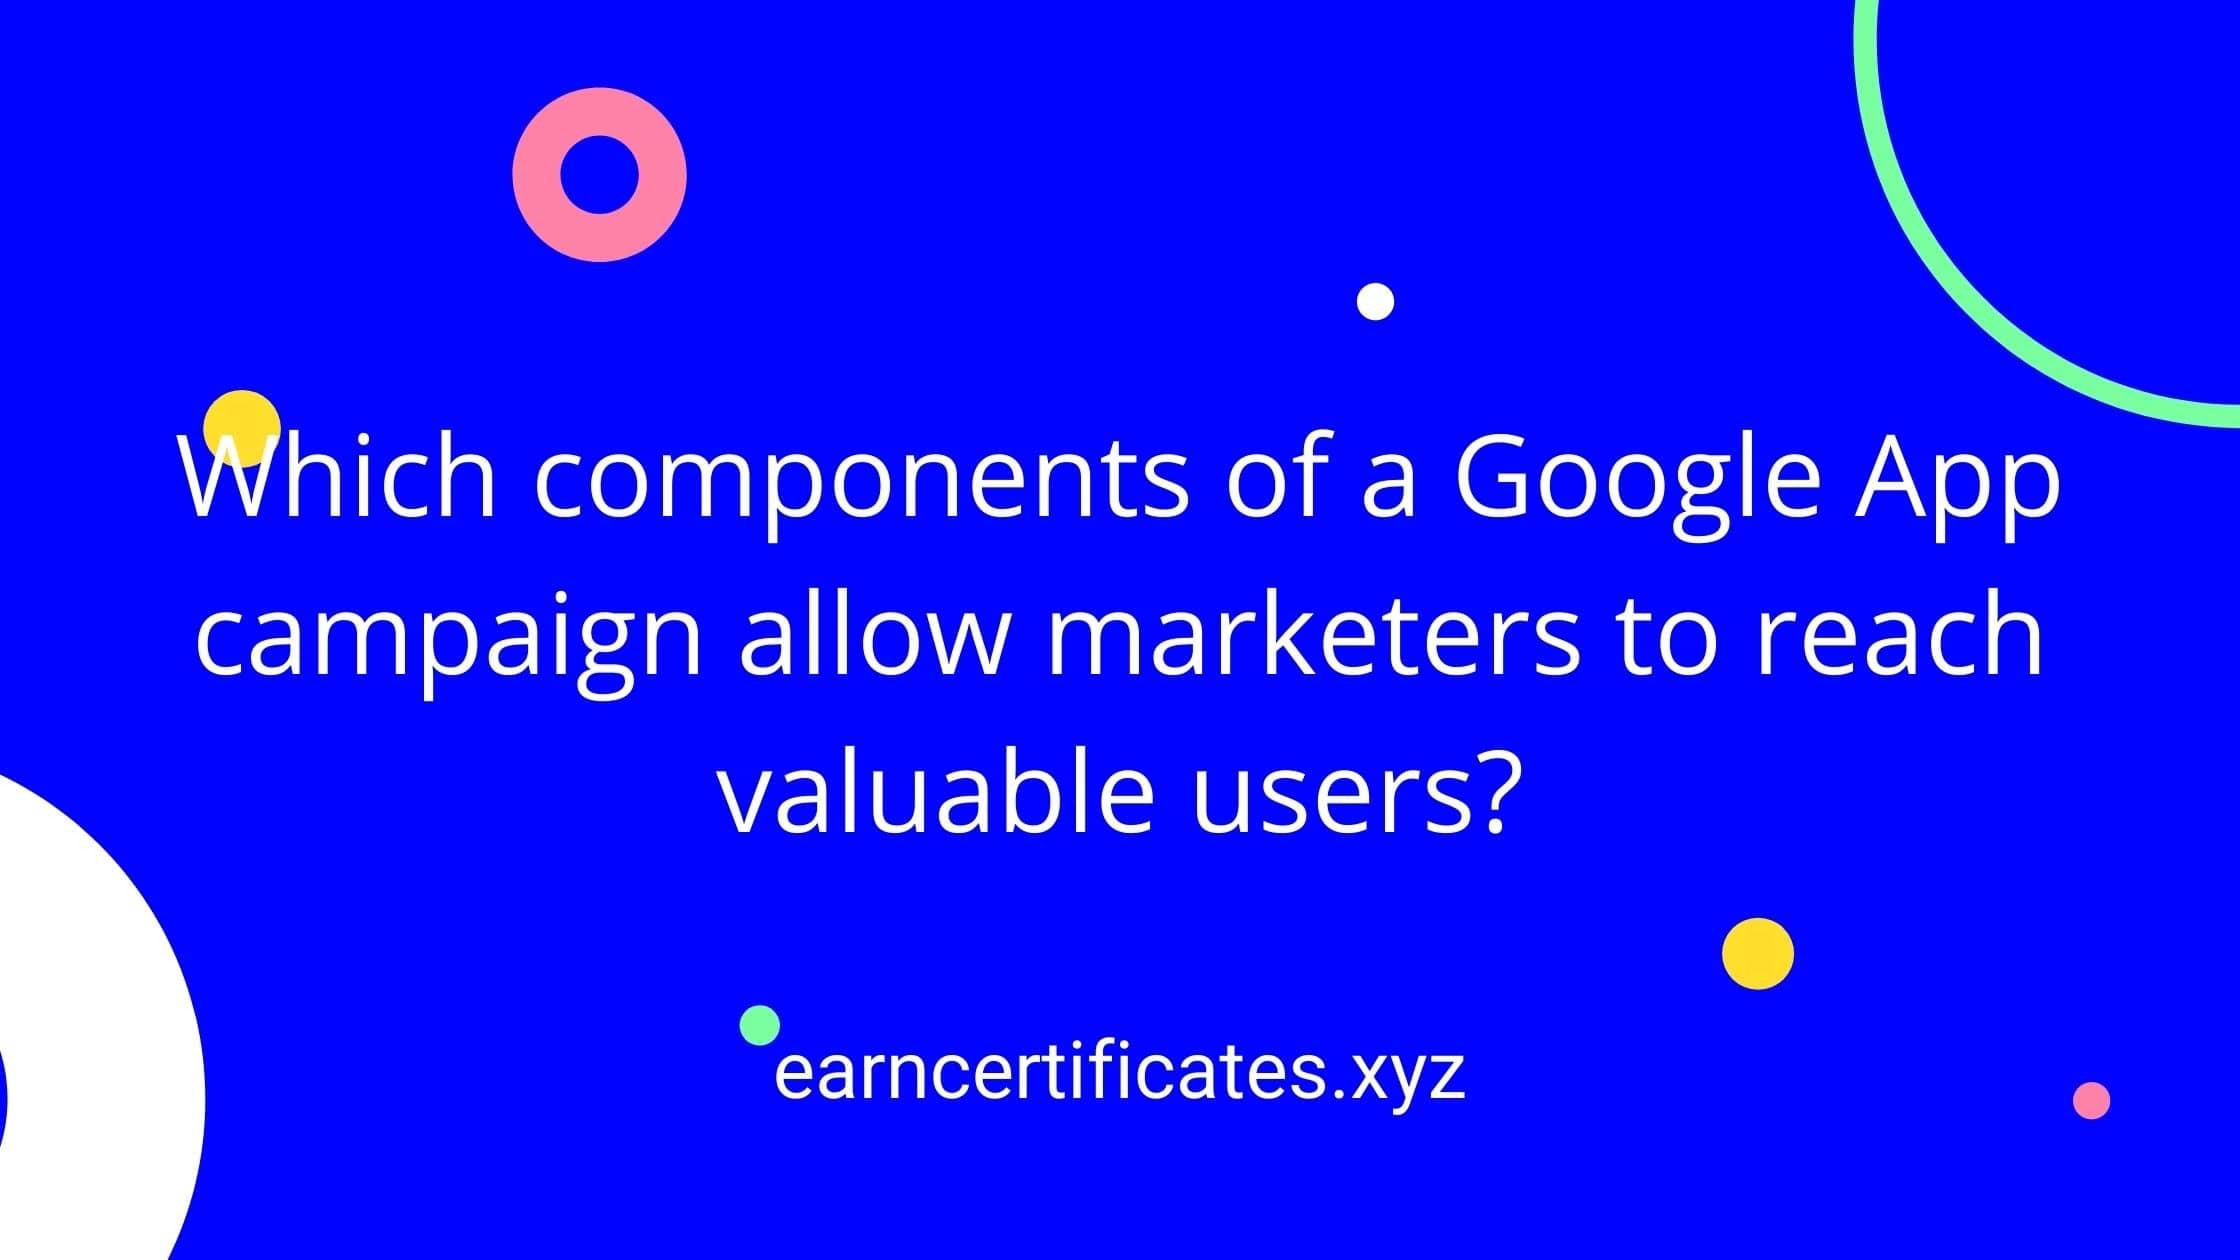 Which components of a Google App campaign allow marketers to reach valuable users?